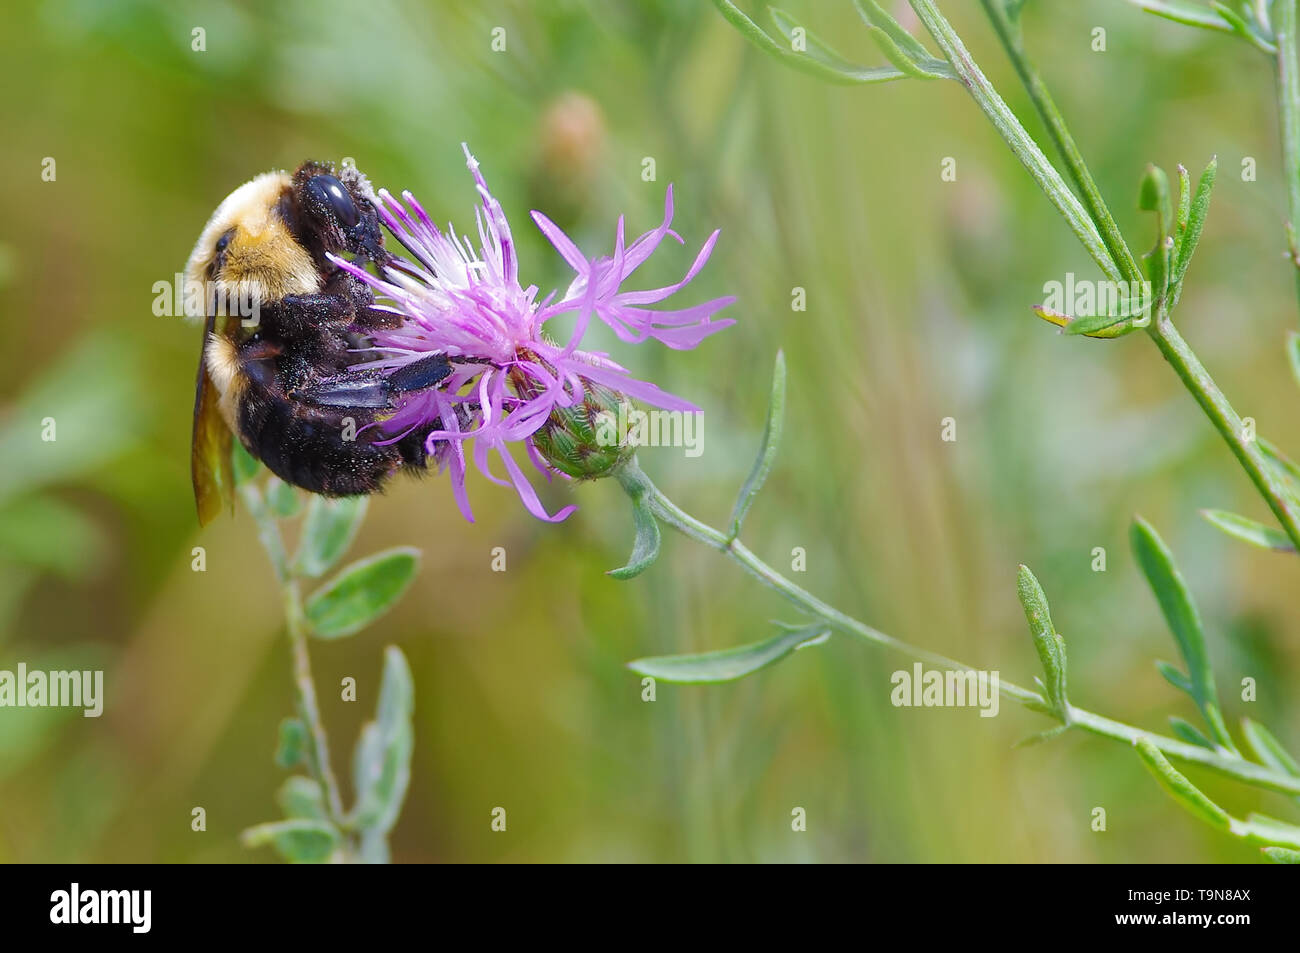 Bee Population Decline Stock Photos & Bee Population ... - photo#42